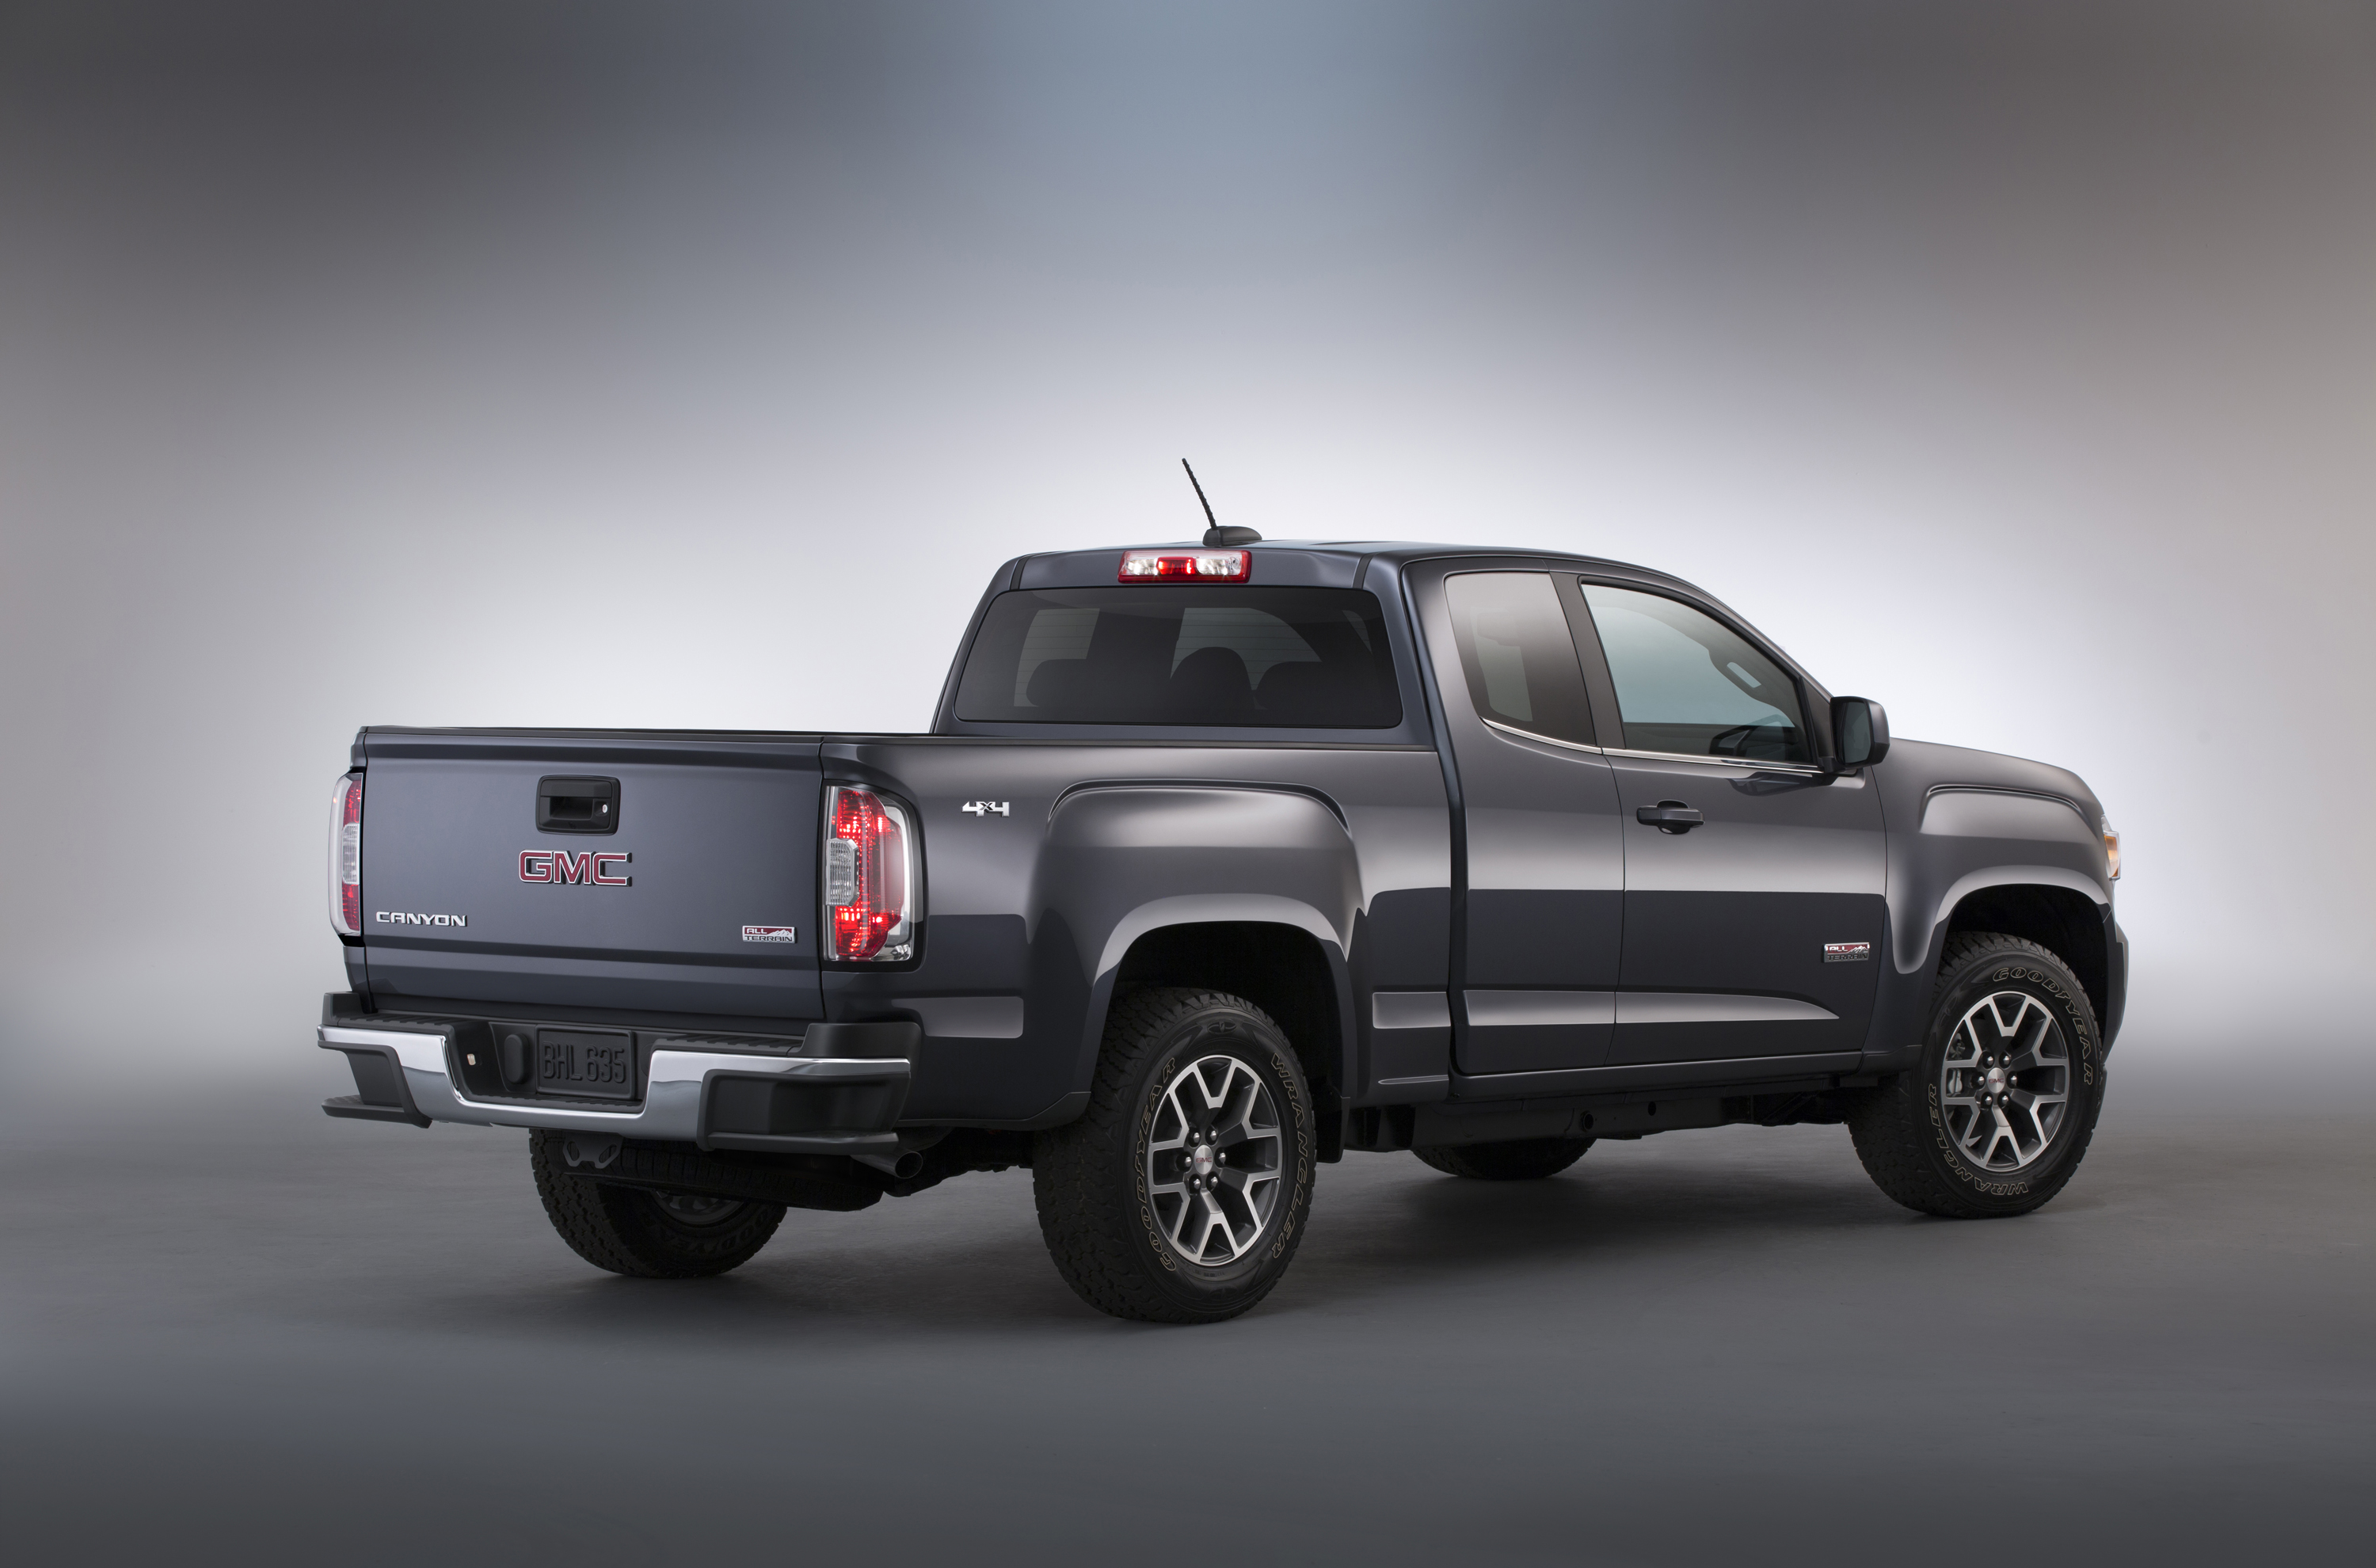 2015 Gmc Canyon All Terrain Sle Extended Cab Short Bed Rear Thre Motor Review